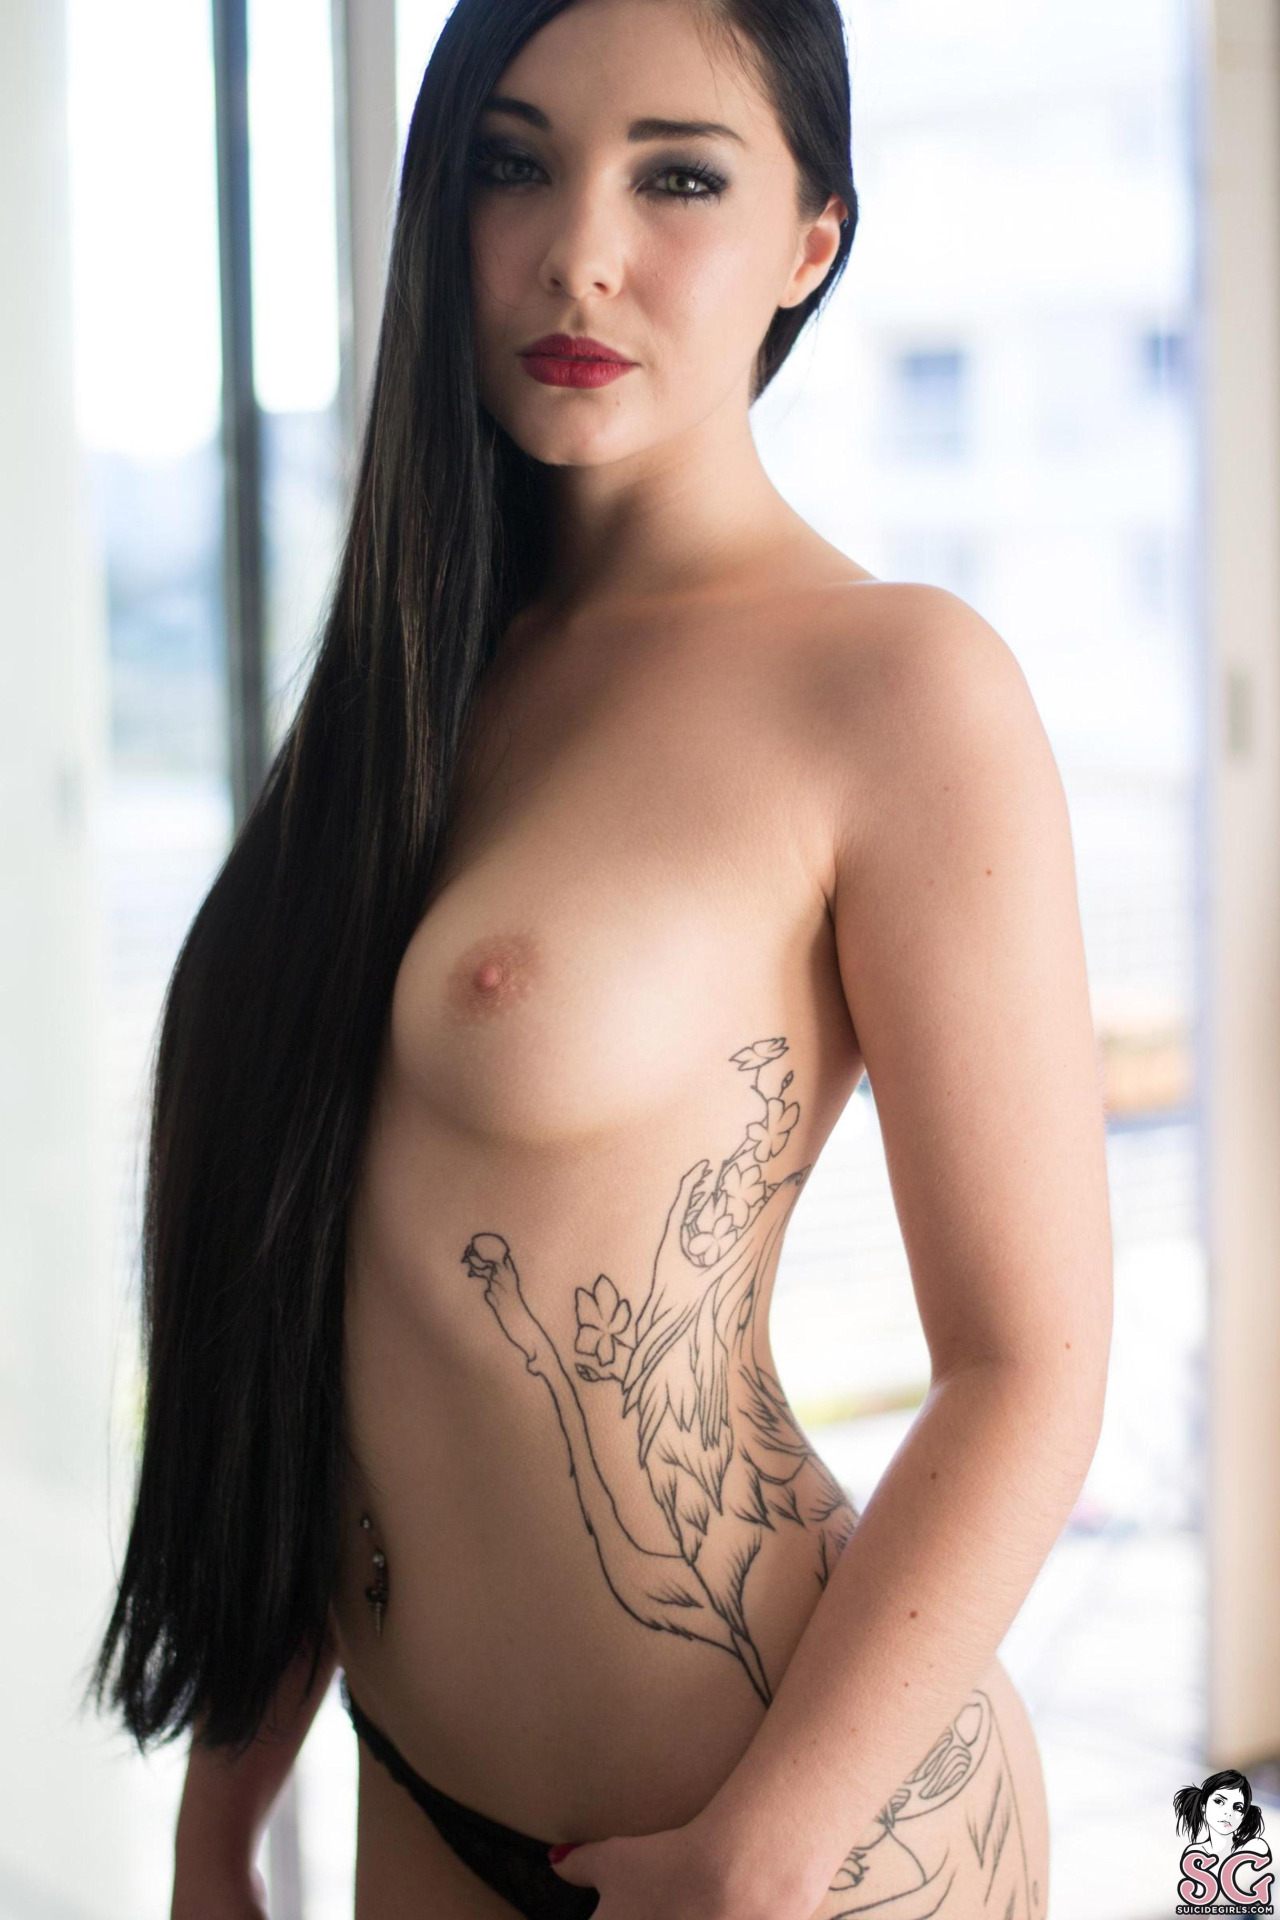 suicide-girls-naked-tattoos-nude-mix-vol9-71